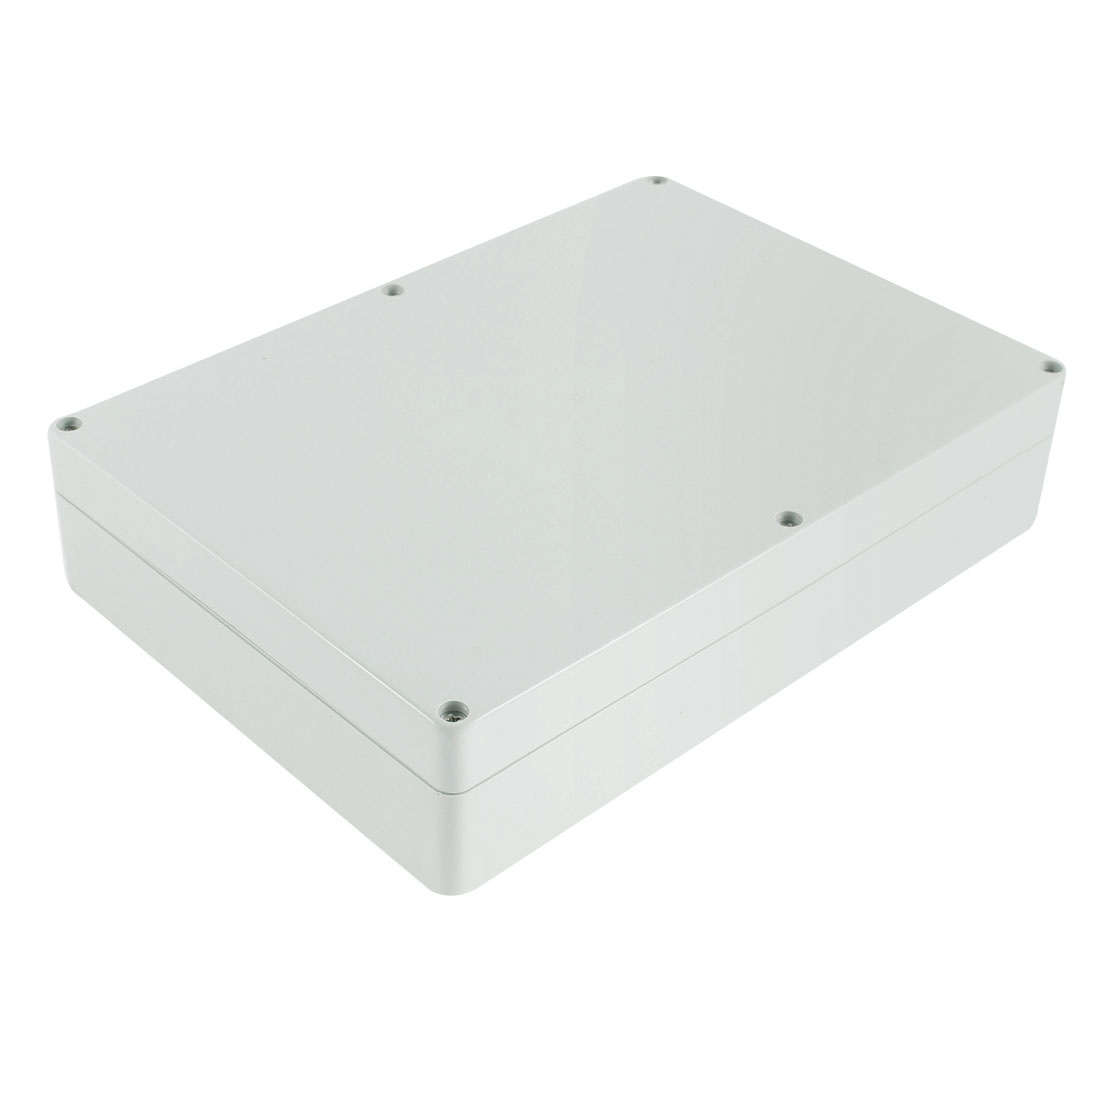 Plastic Electronic Project Junction Box Enclosure with Screws 262 x 182 x 60mm - image 3 of 3